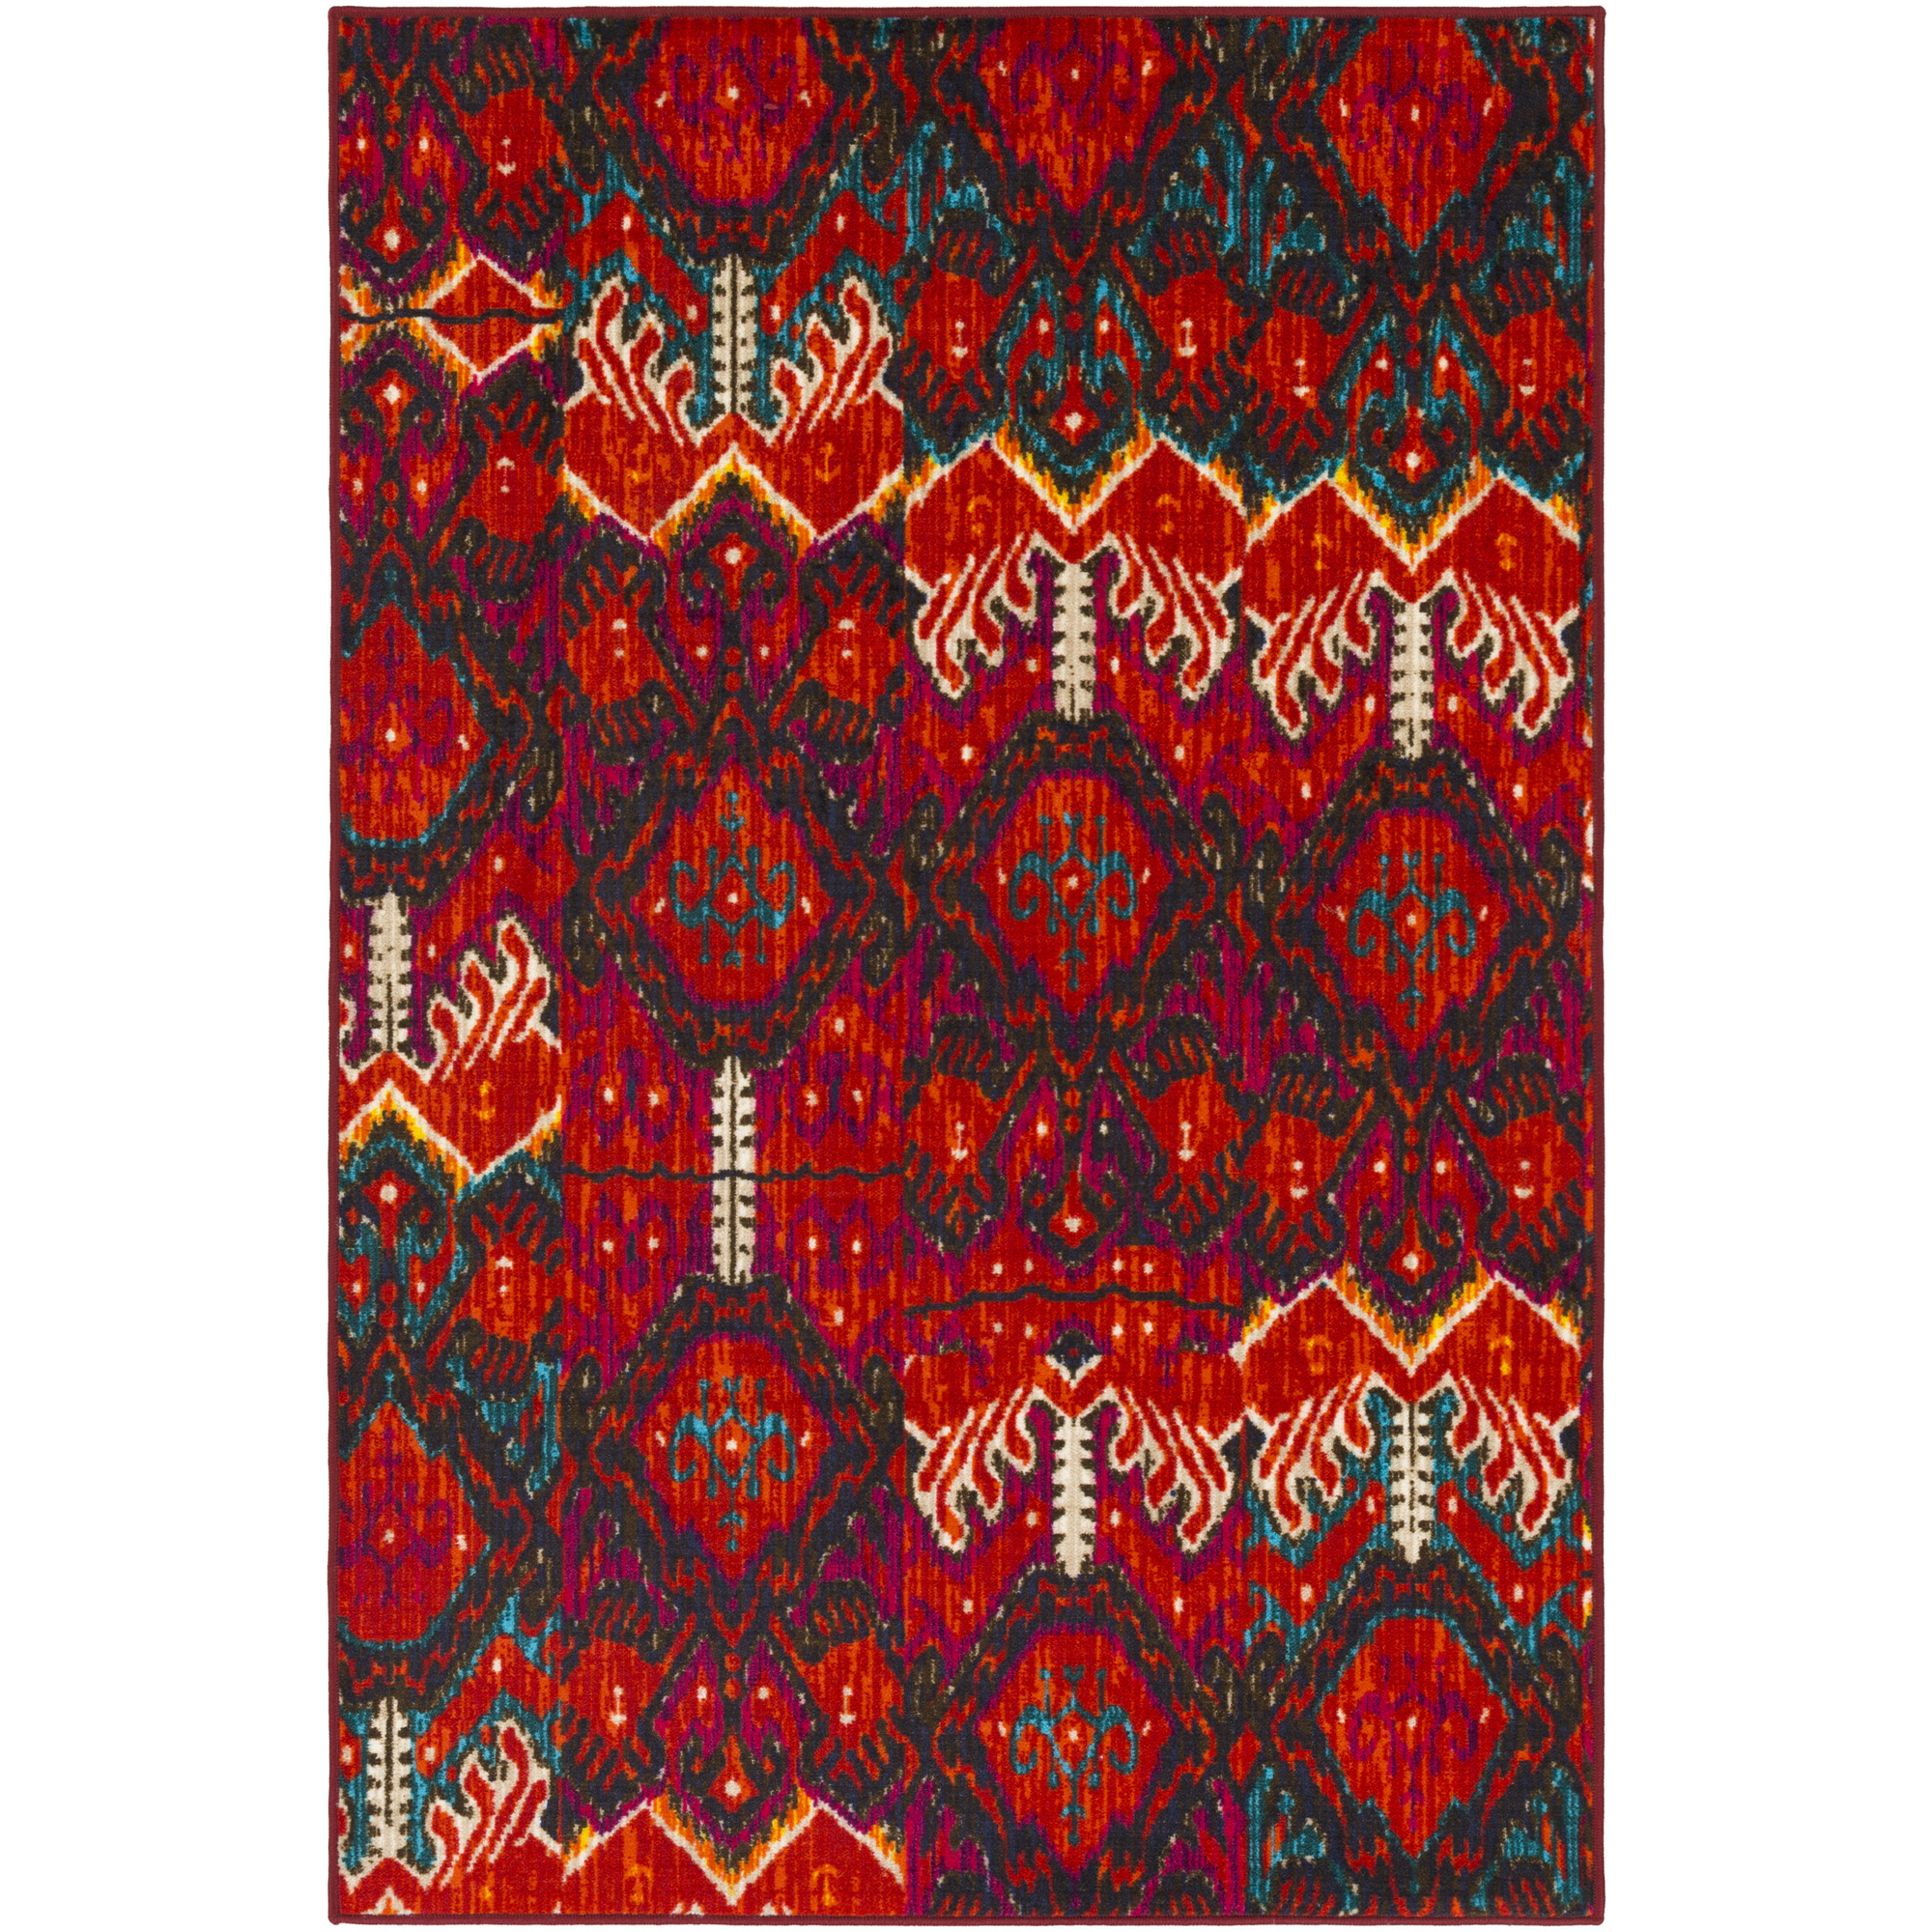 Art of Knot Amundsen 5' x 8' Rectangular Area Rug